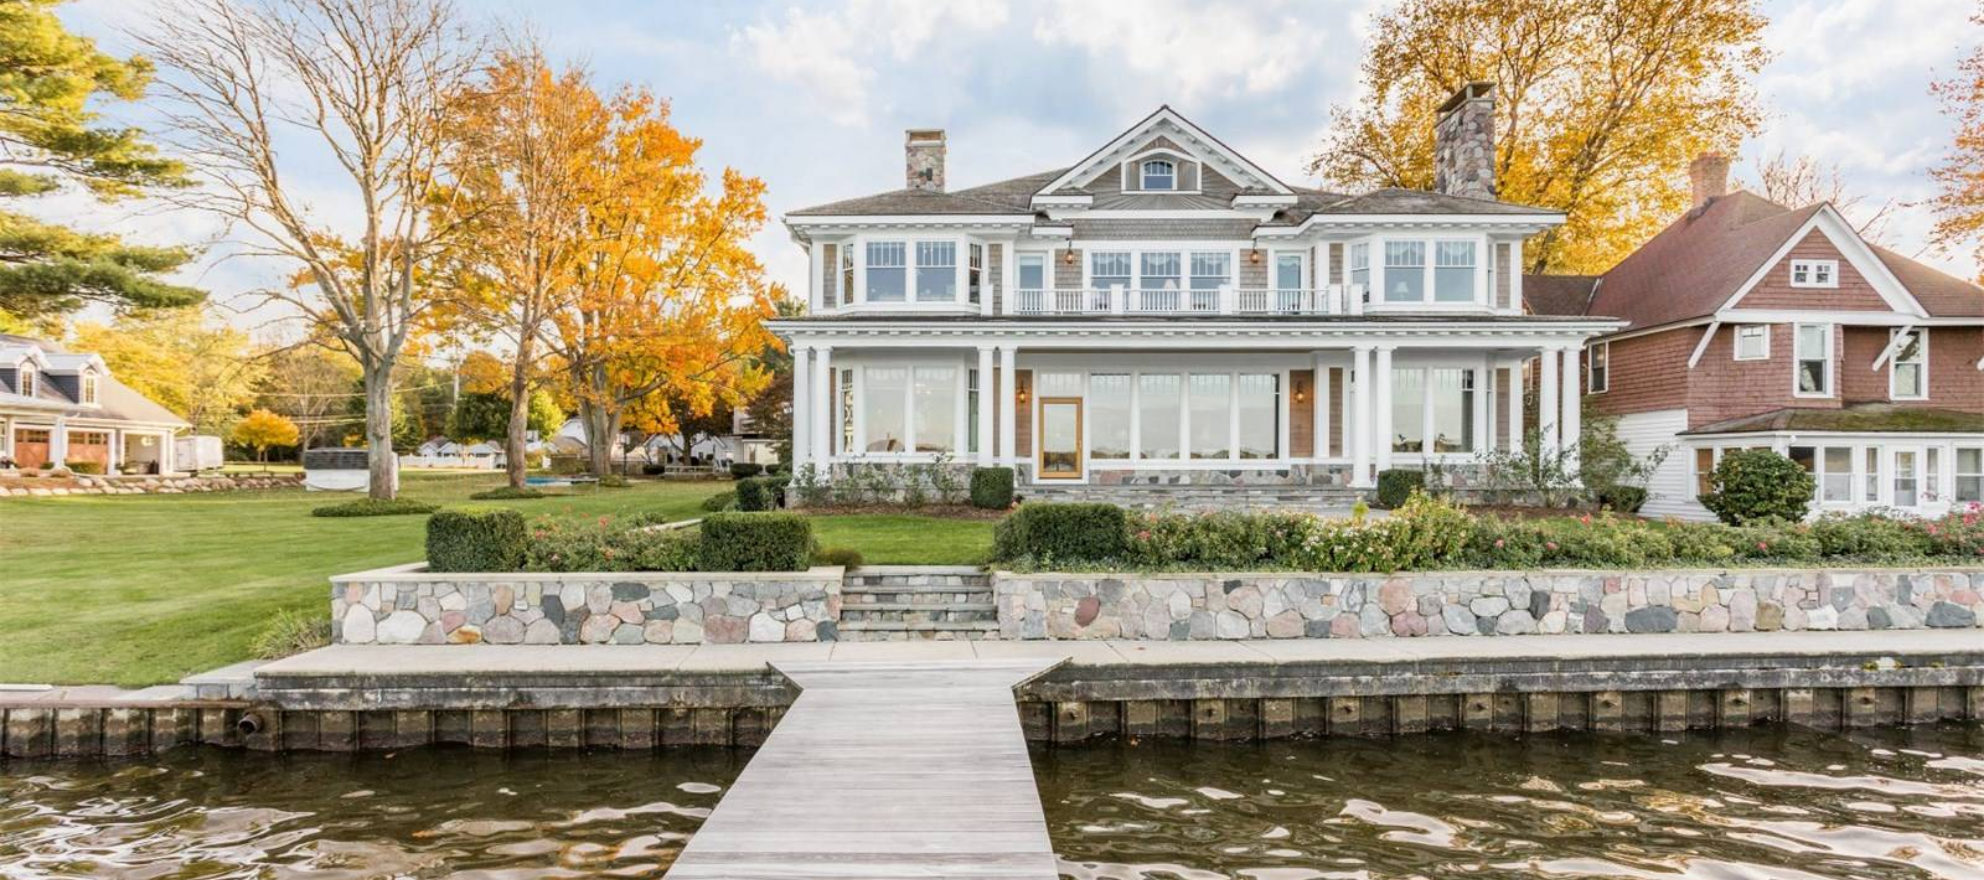 The 3 most common questions luxury buyers ask